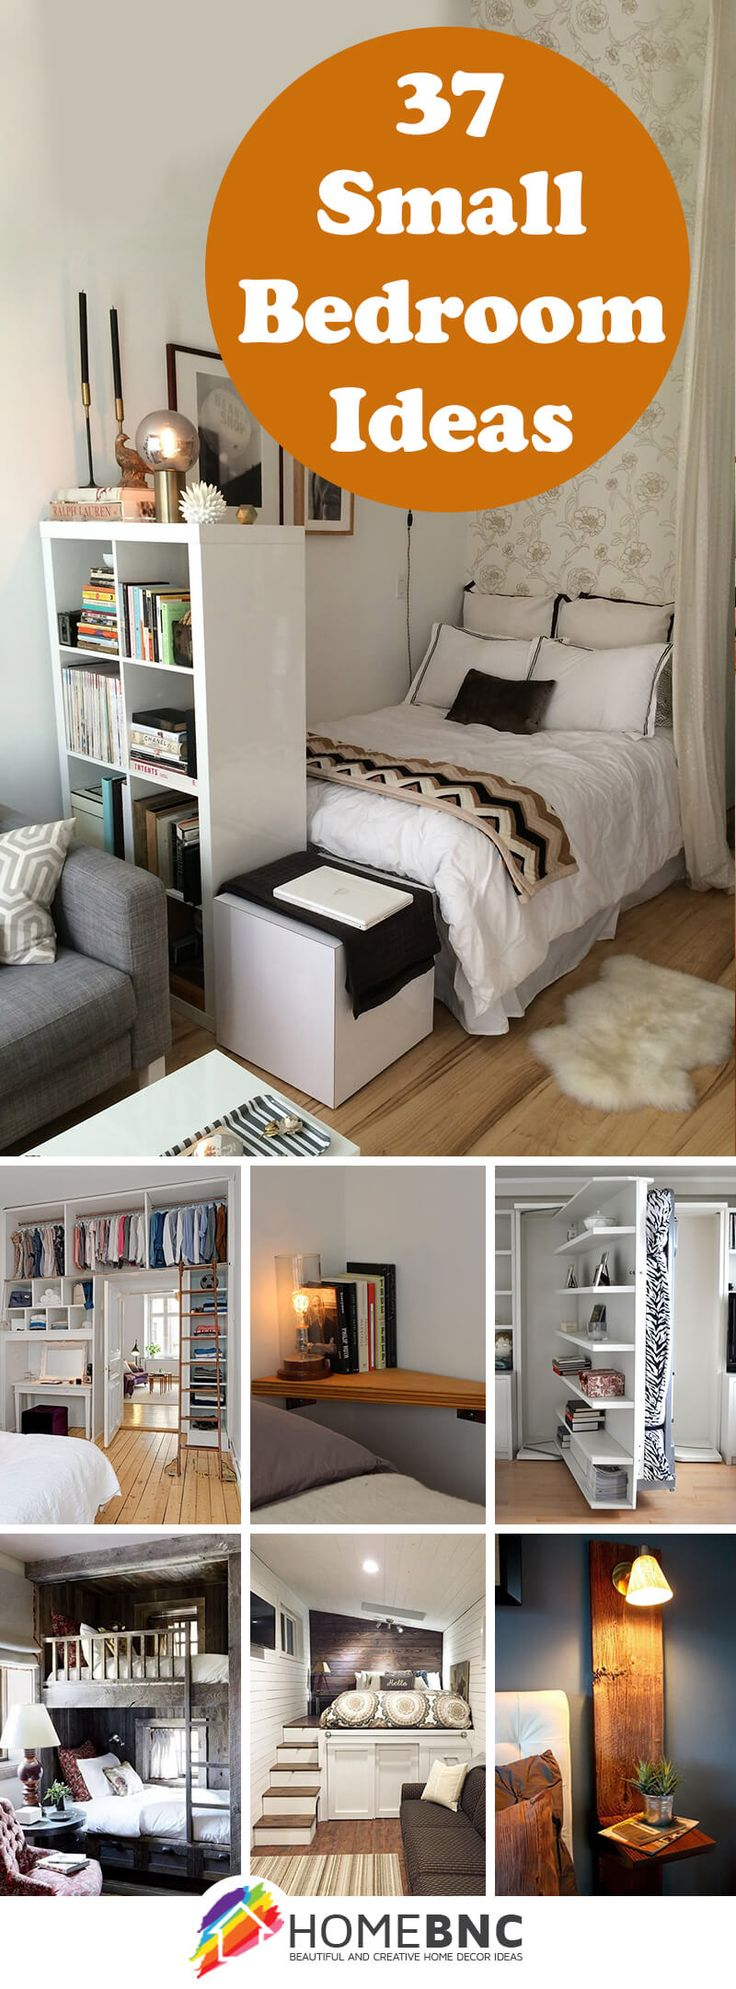 Best  Small Bedrooms Ideas On Pinterest - Bedroom ideas small spaces